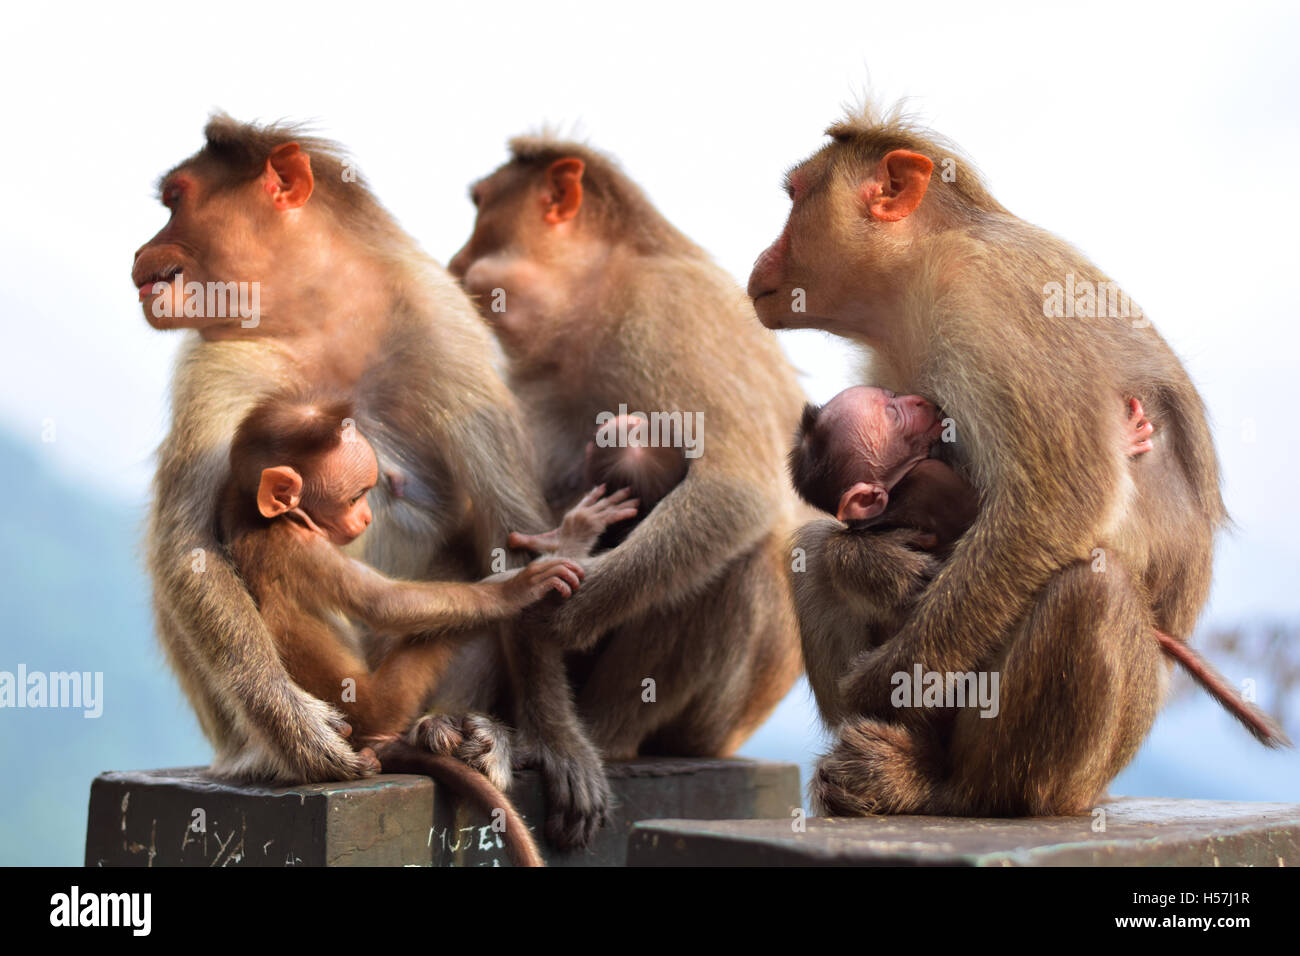 Three Monkeys with newborns all are facing left - Stock Image